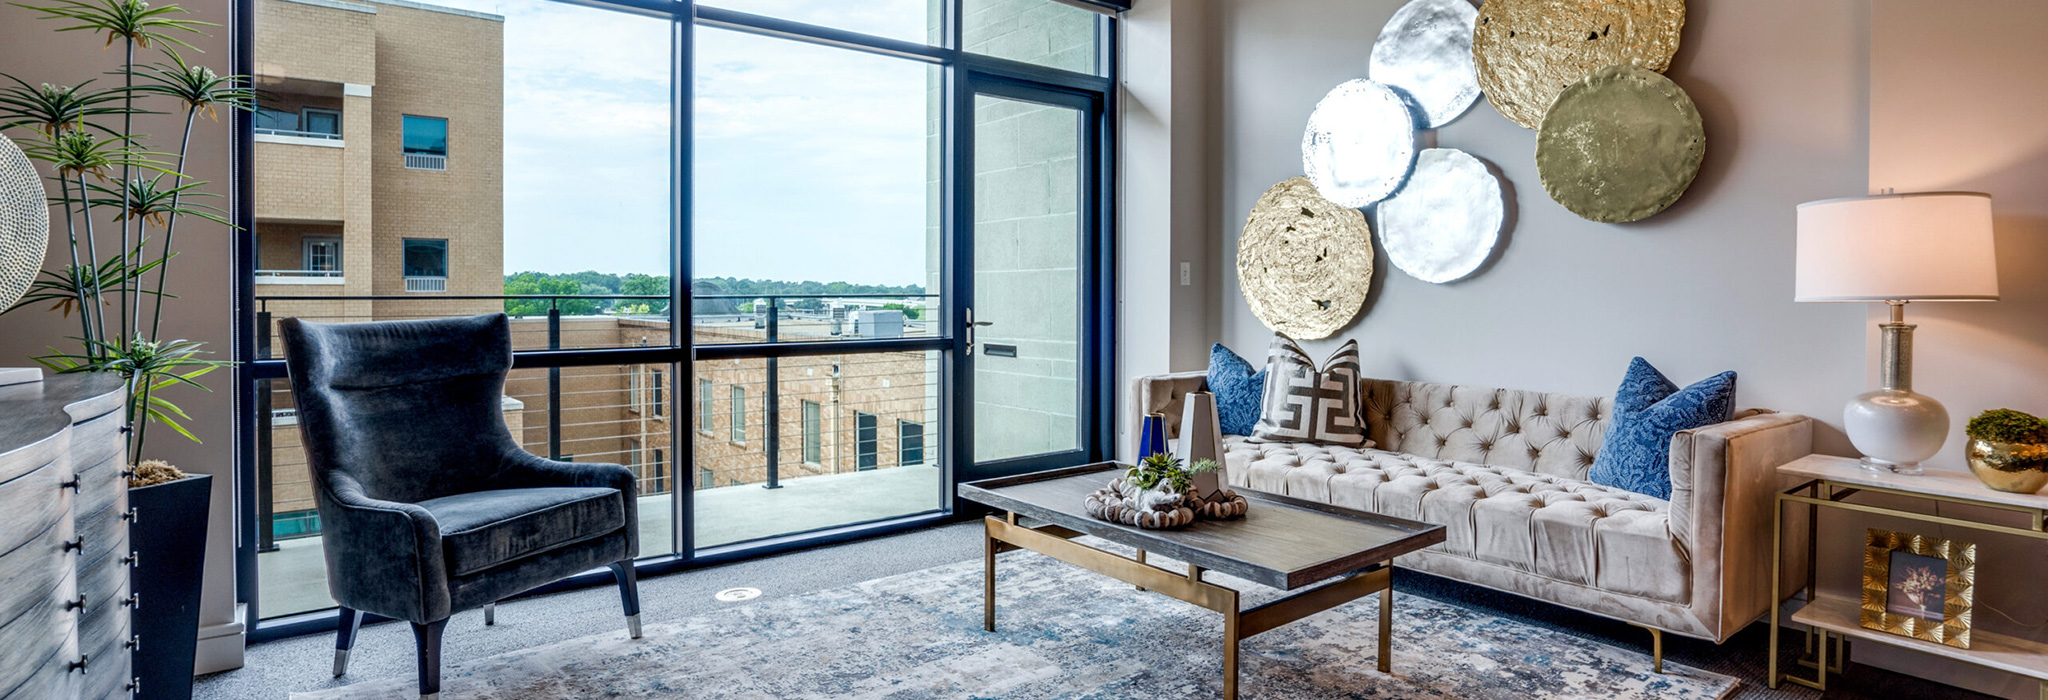 1501-w-division-st-arlington-tx-living-area-page-header